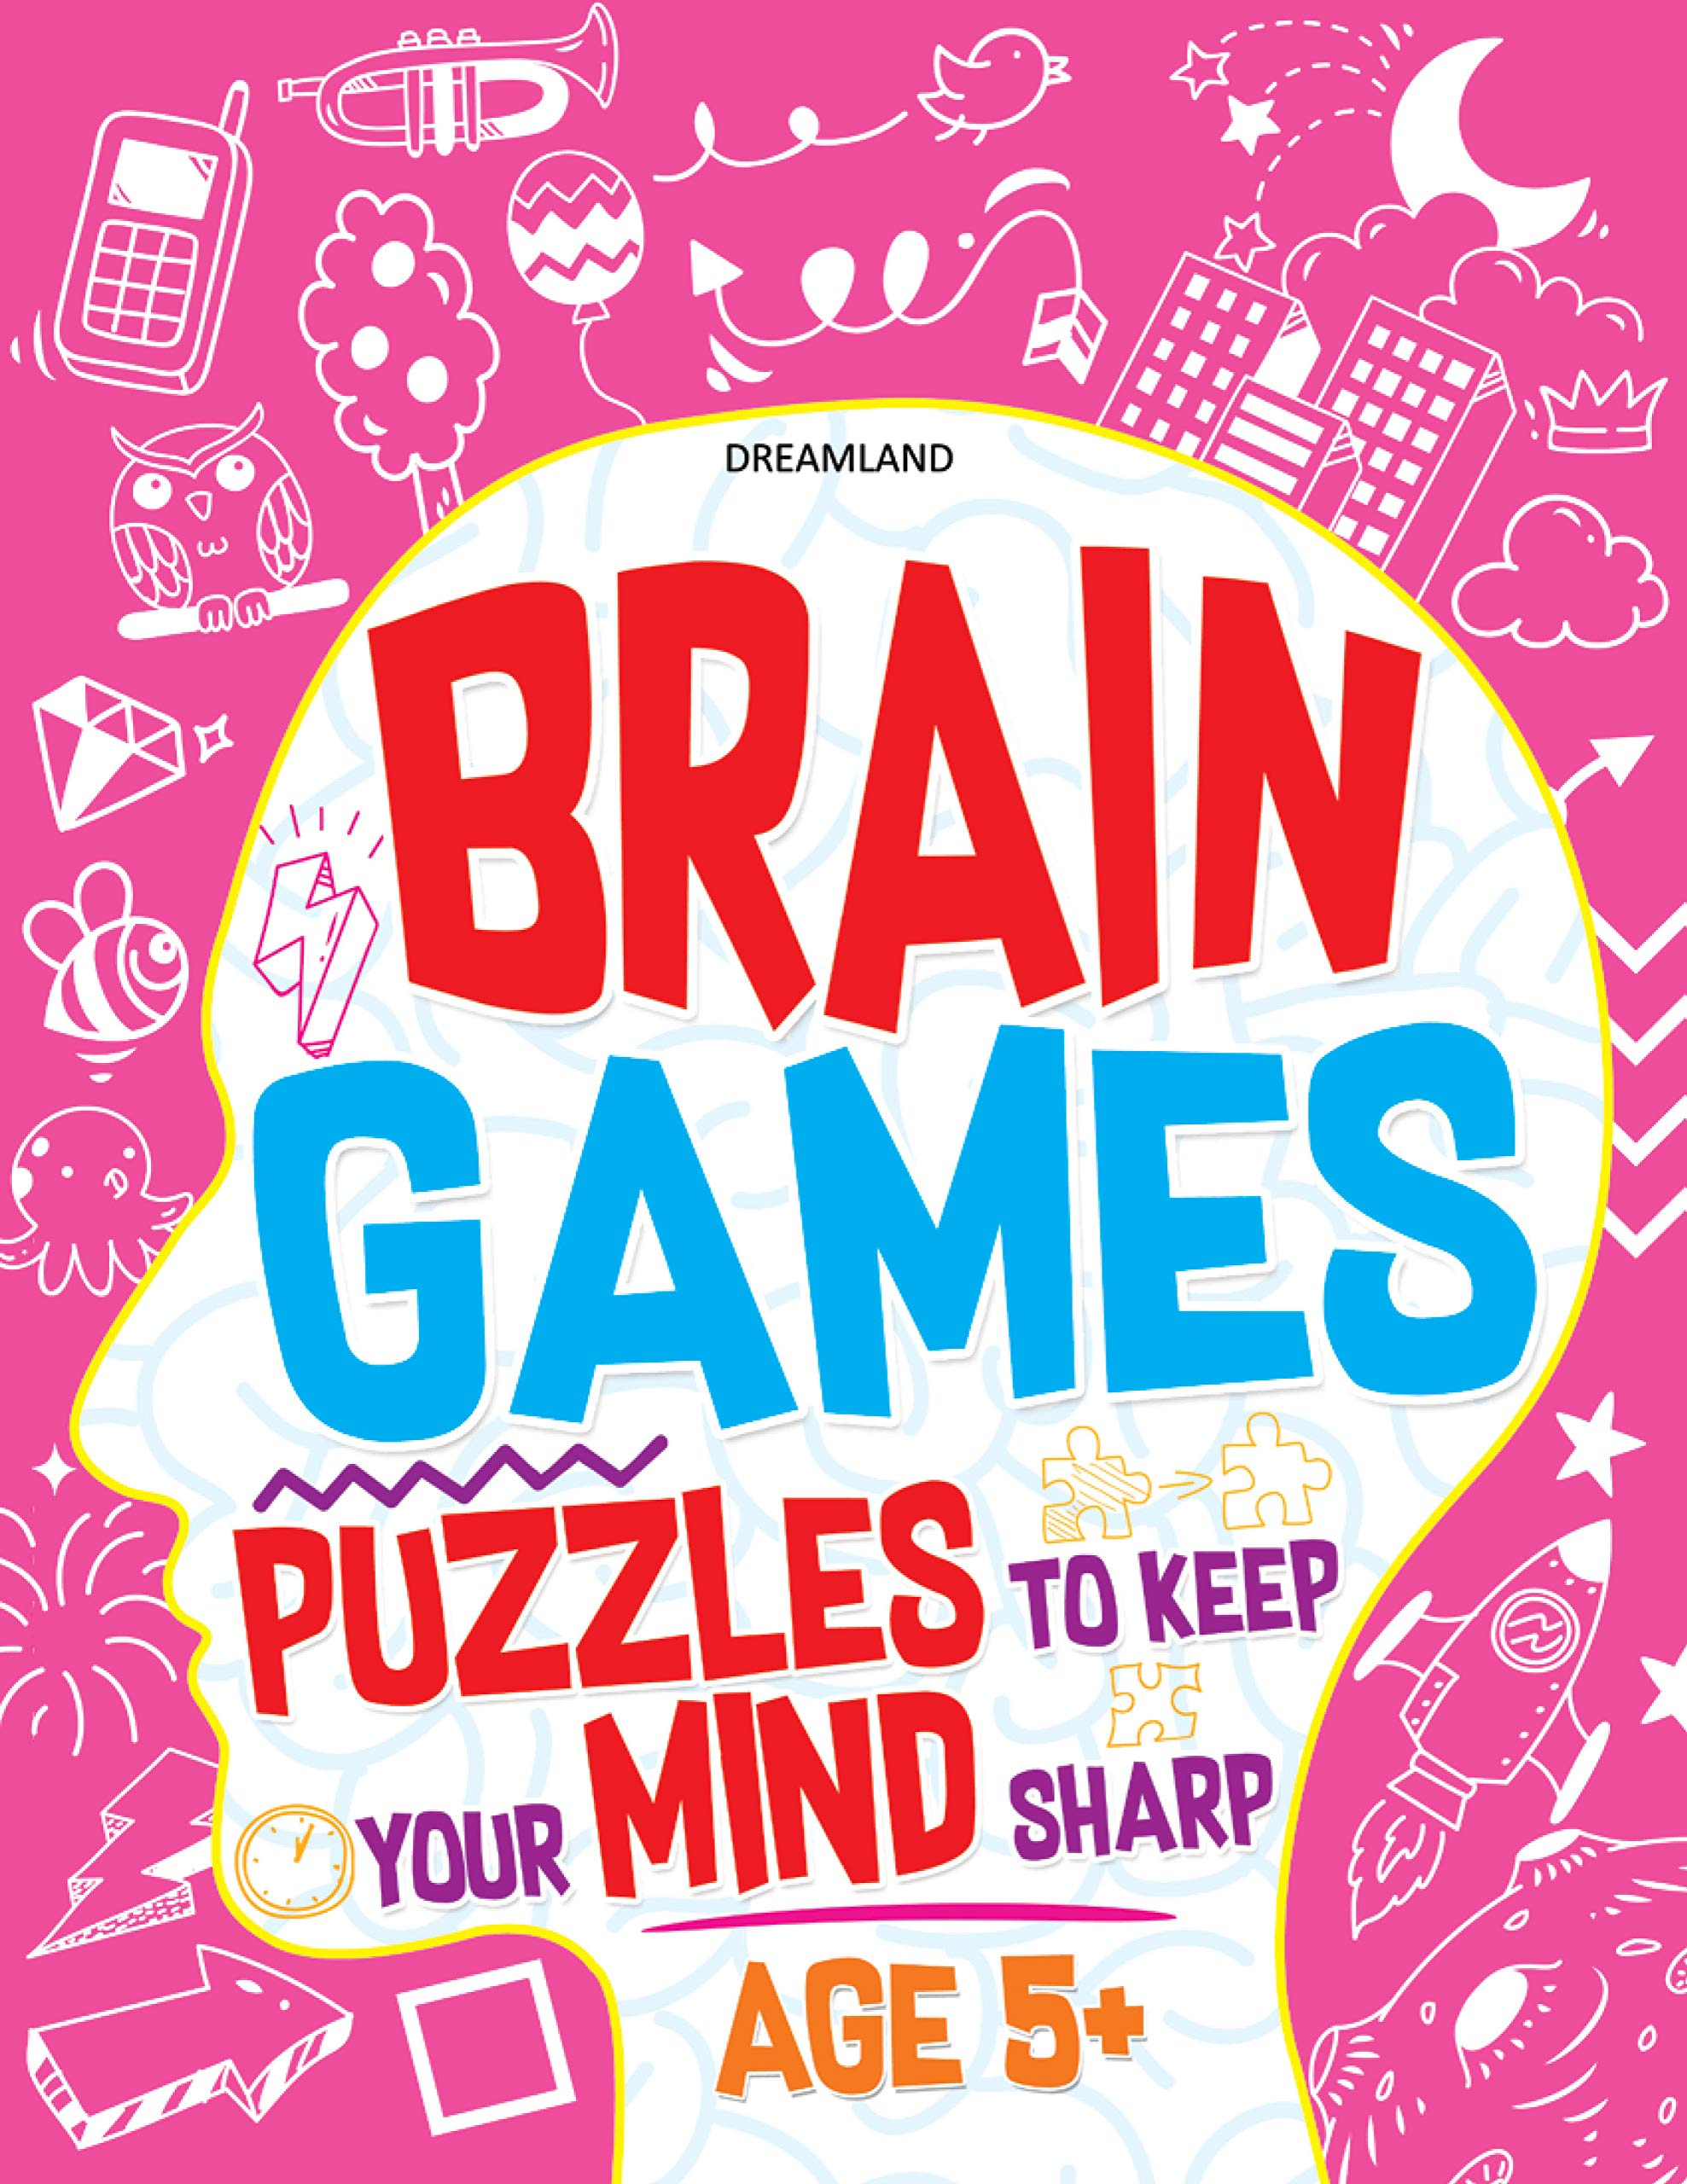 Brain Games (Puzzles to keep your Mind sharp Age 5+)